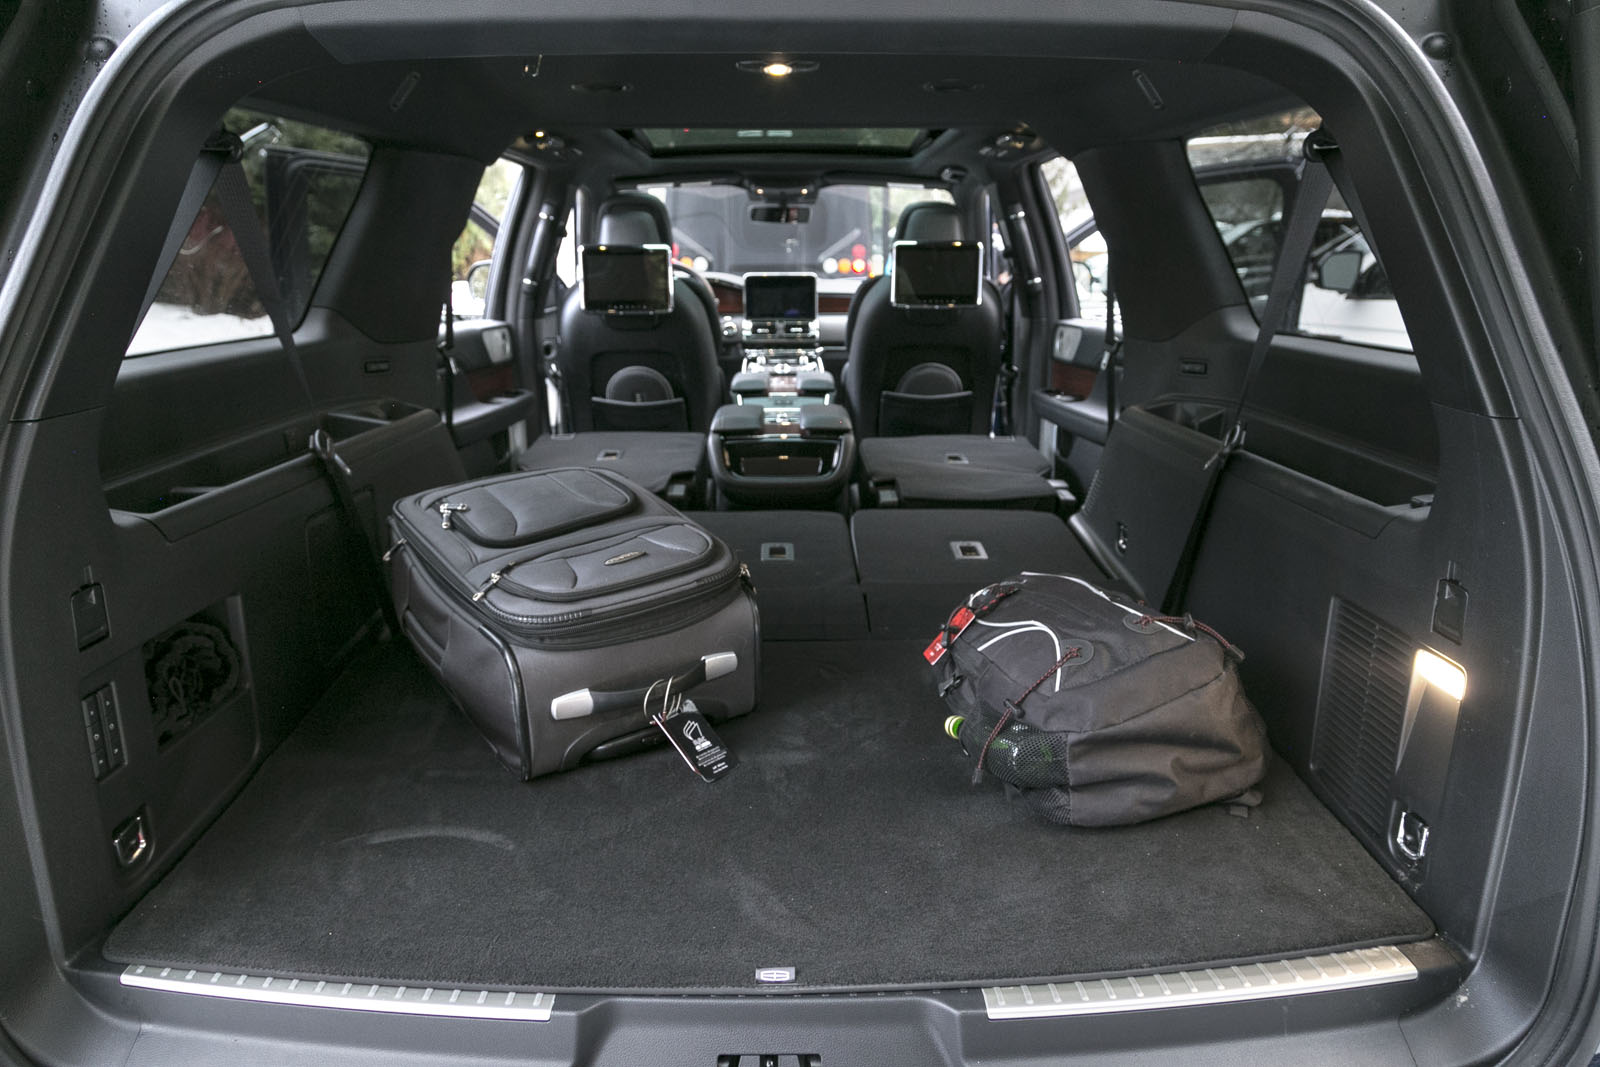 https://www.autoguide.com/blog/wp-content/gallery/2018-lincoln-navigator-review/2018-Lincoln-Navigator-14.jpg